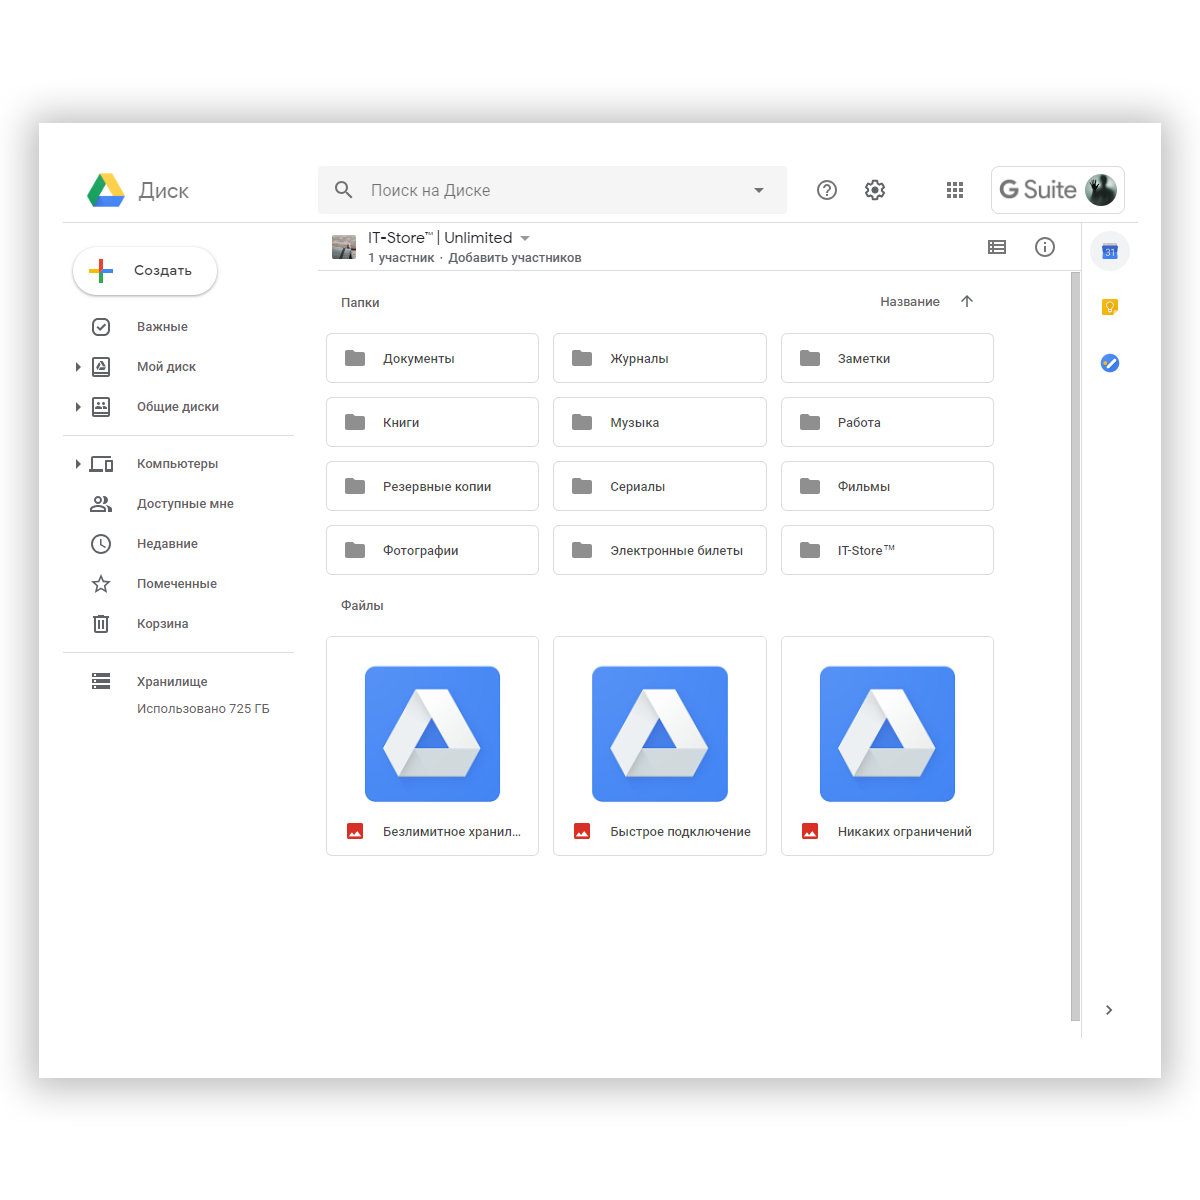 🔥 UNLIMITED GOOGLE DRIVE I LIFETIME + BONUSES 🎁